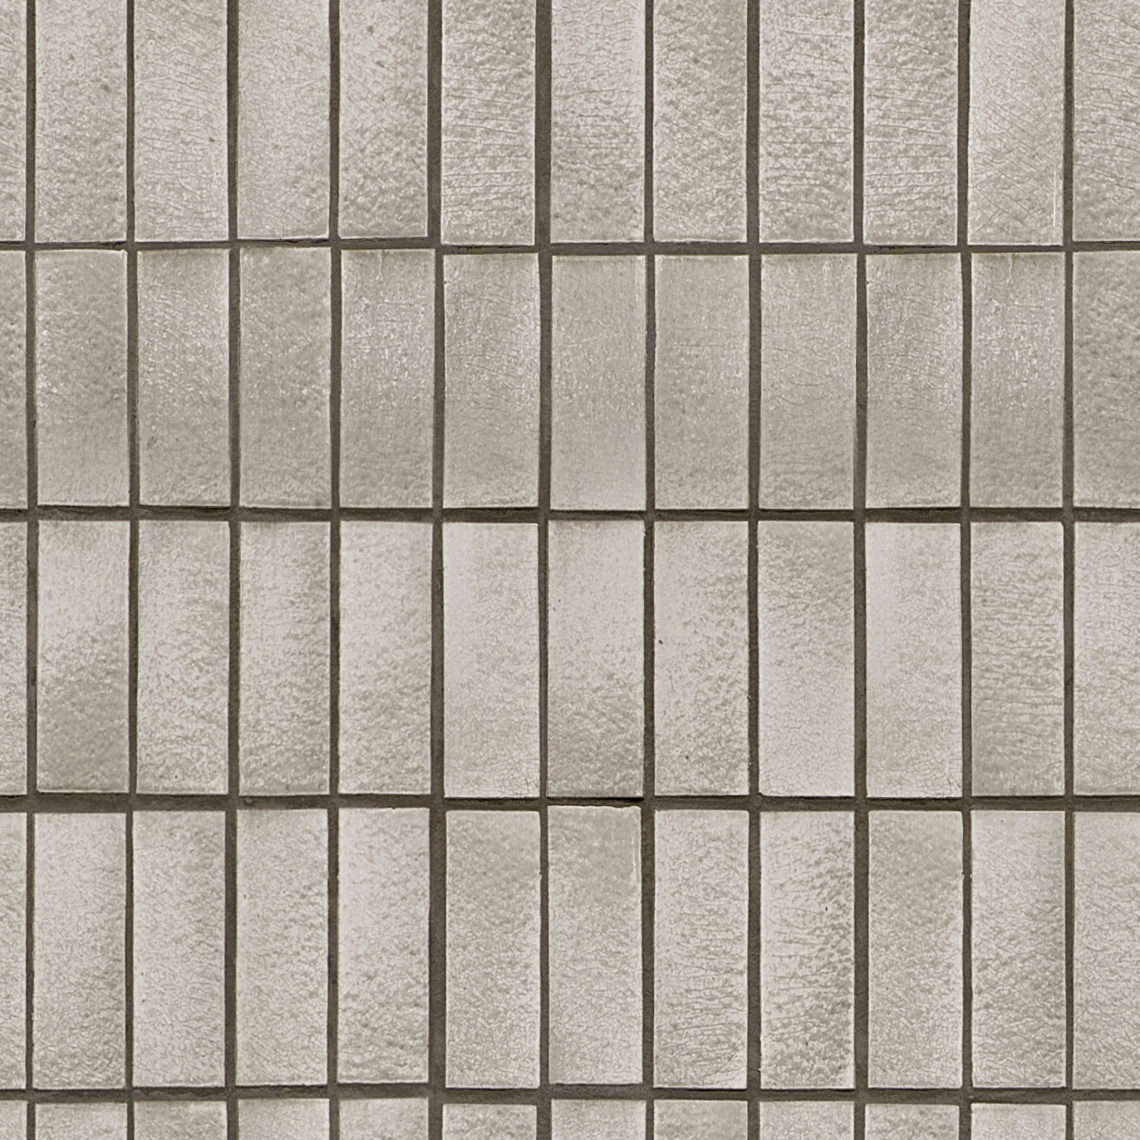 Seamless Ceramic Tiles